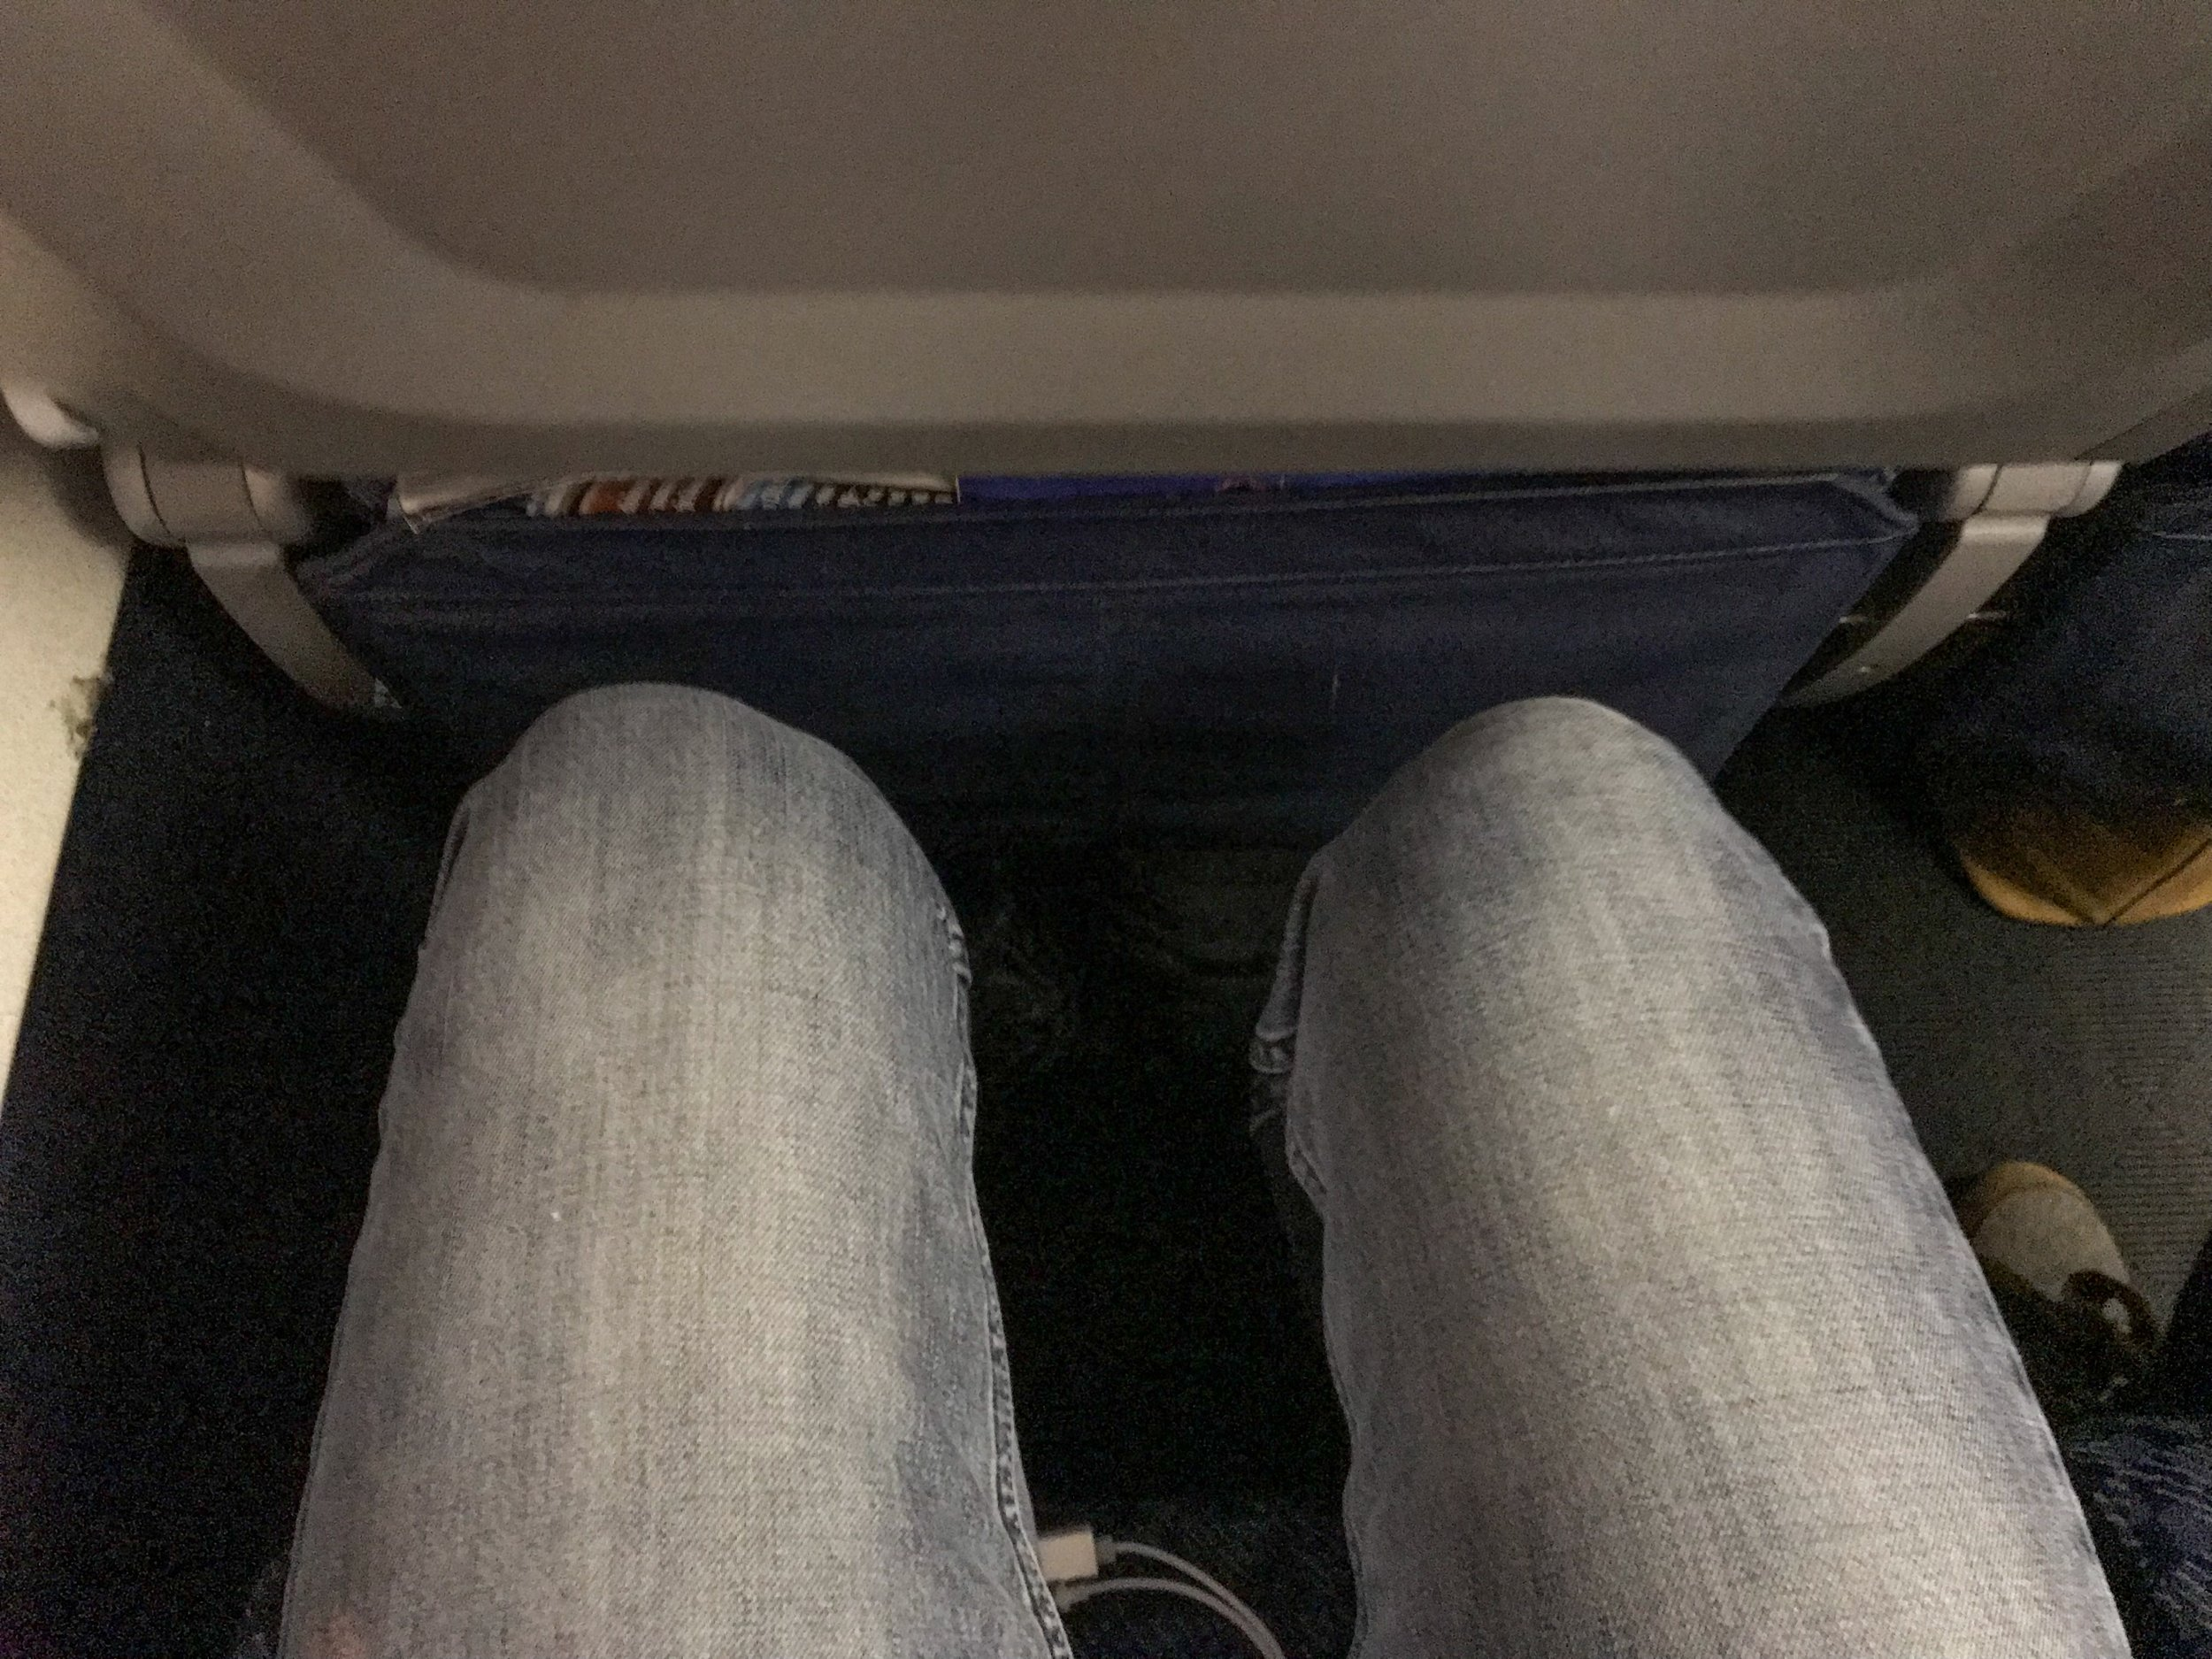 Standard Main Cabin seat pitch - 31 inches on the MD-80.